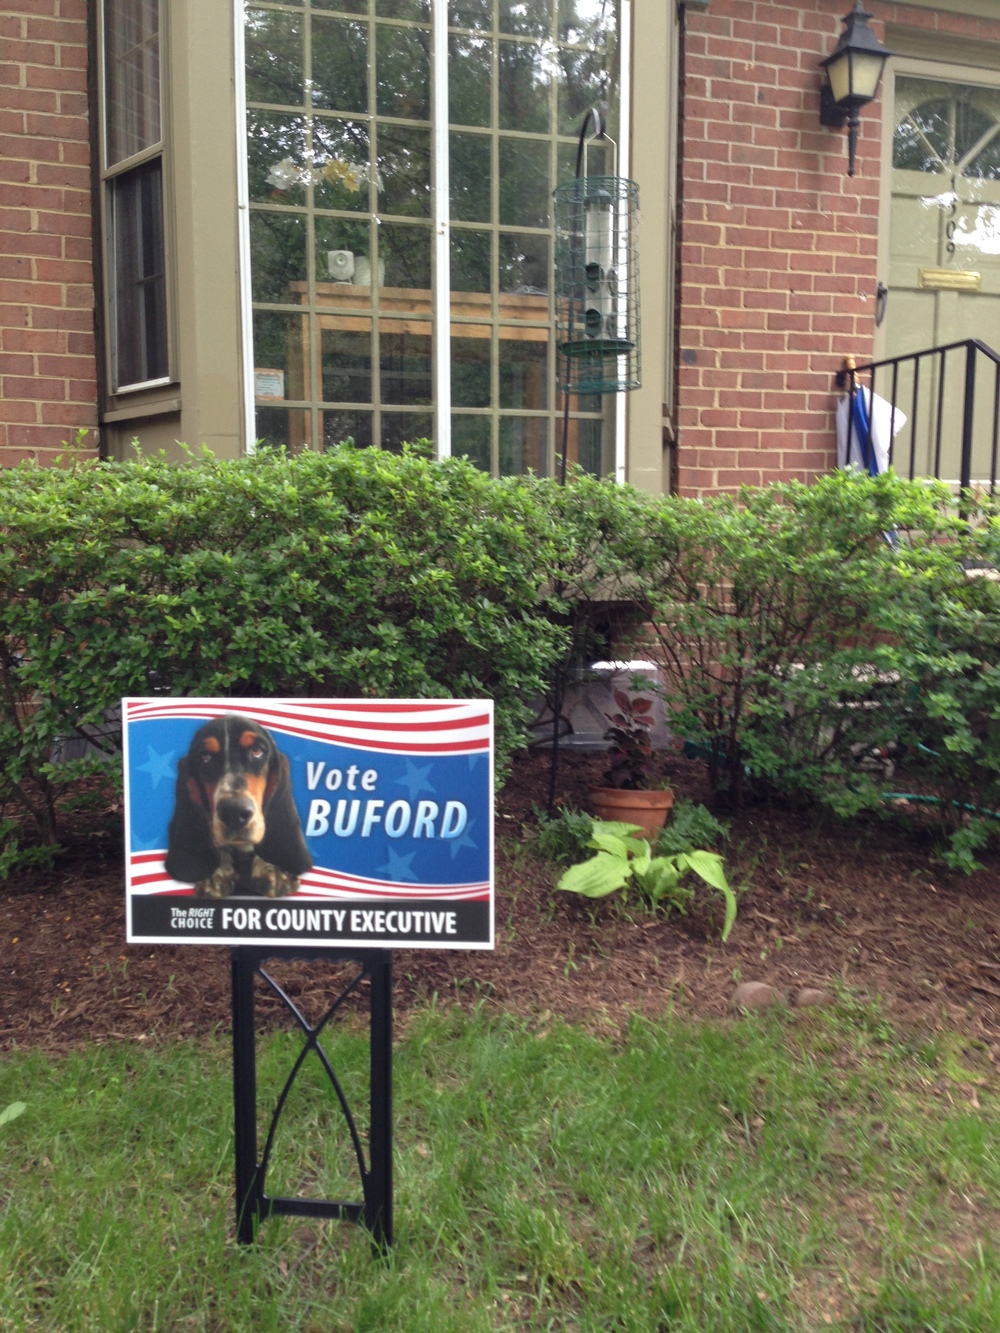 Buford's political sign in the yard.